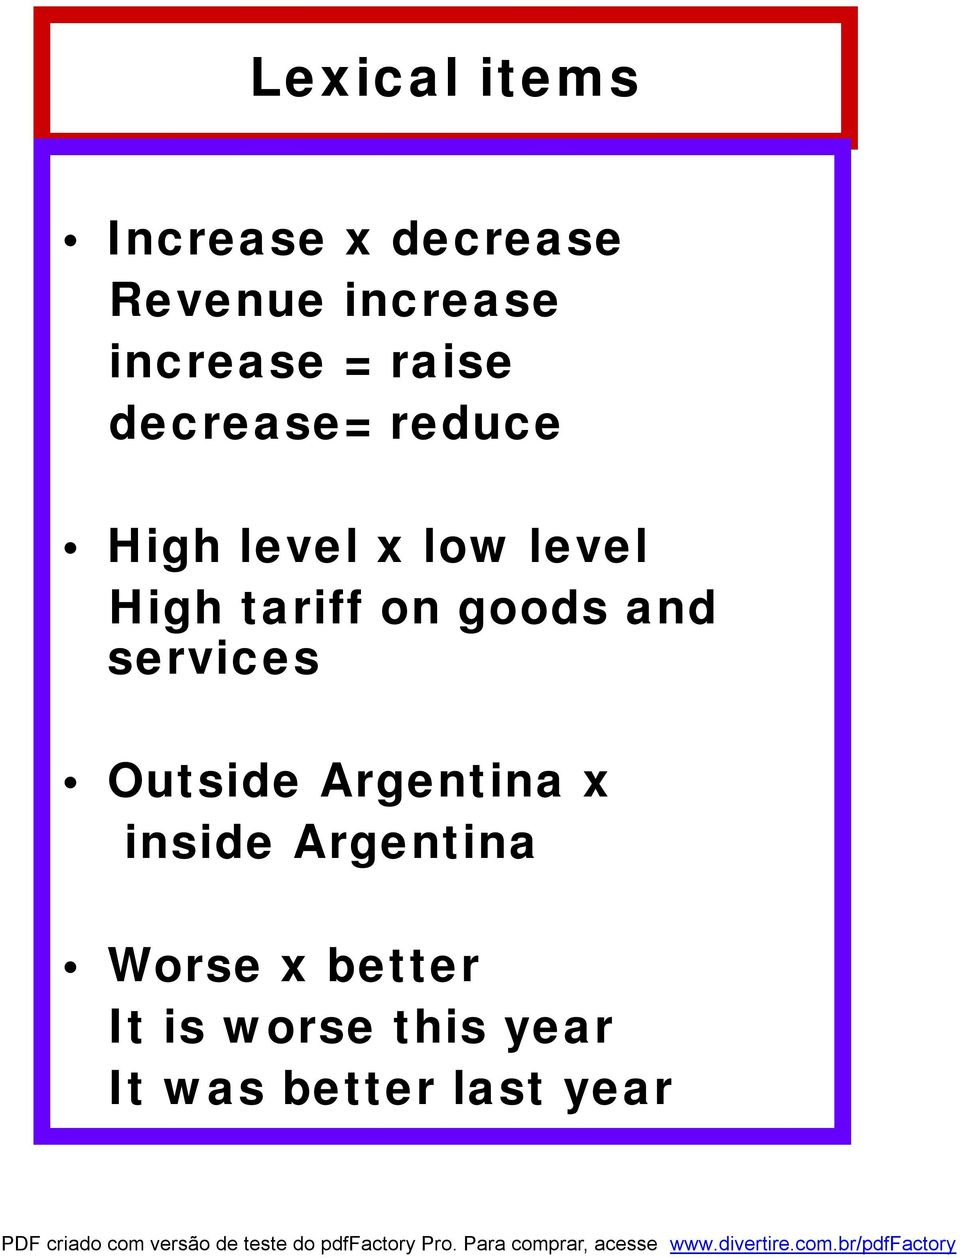 on goods and services Outside Argentina x inside Argentina